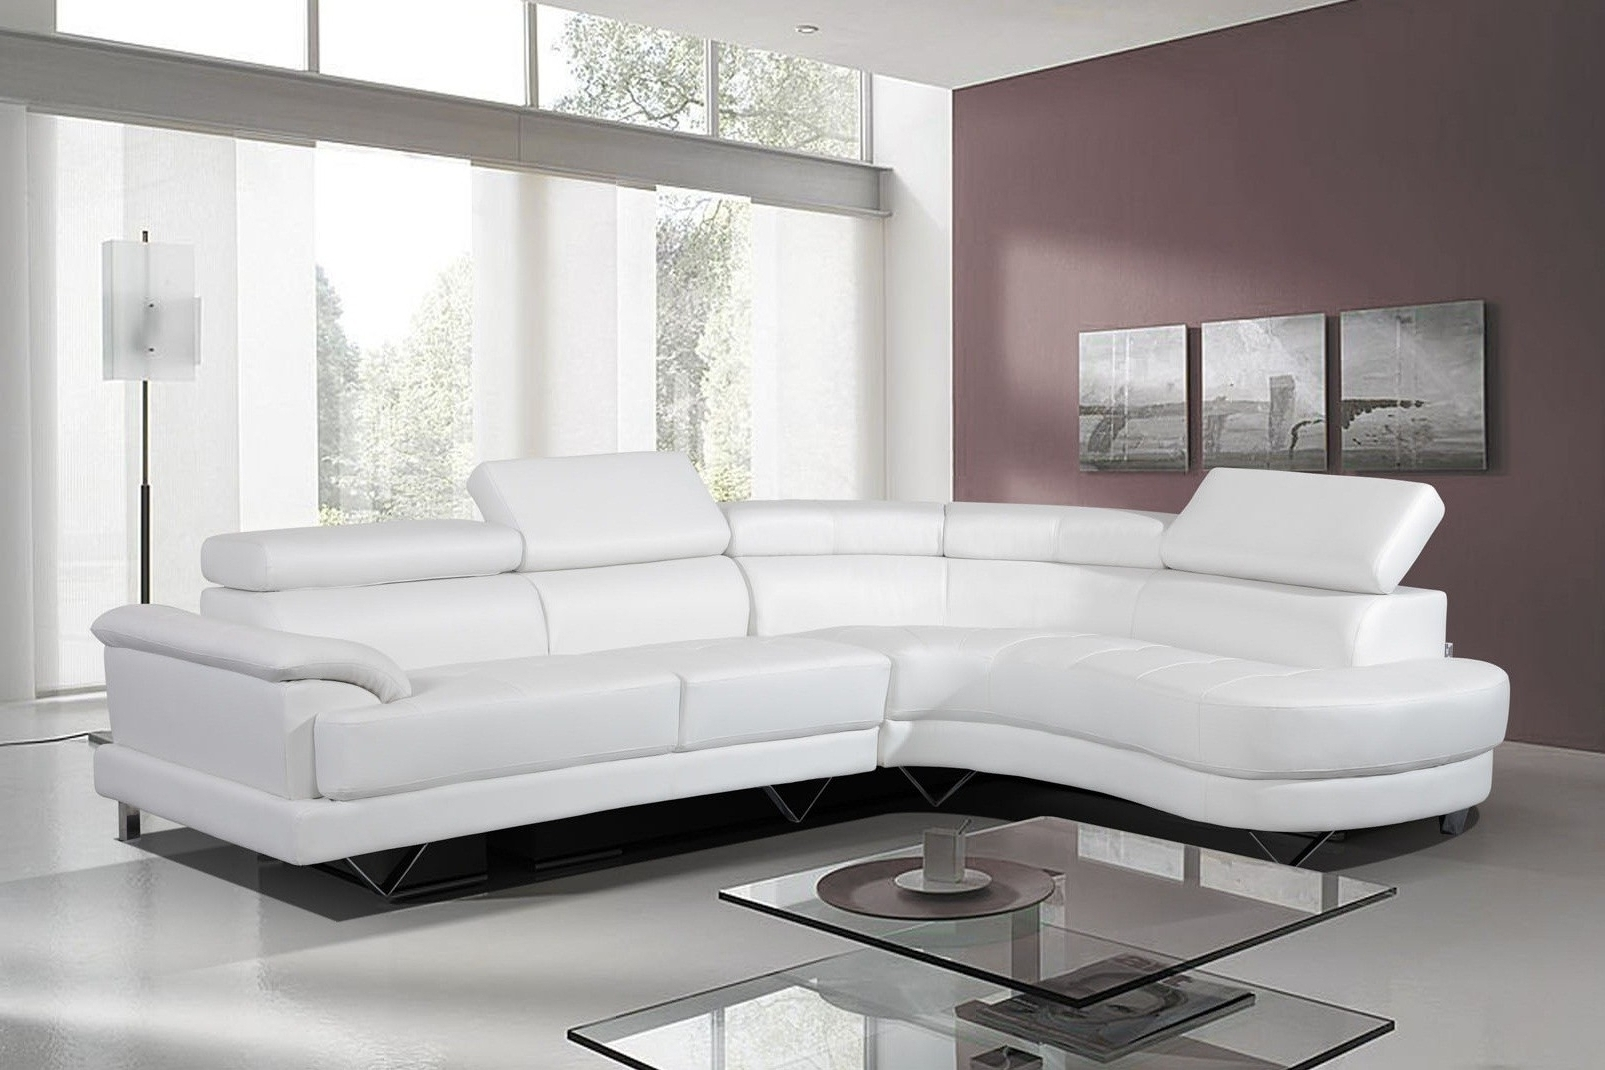 Leather Corner Sofas Regarding Recent Gallery White Corner Sofa Leather – Mediasupload (View 9 of 20)